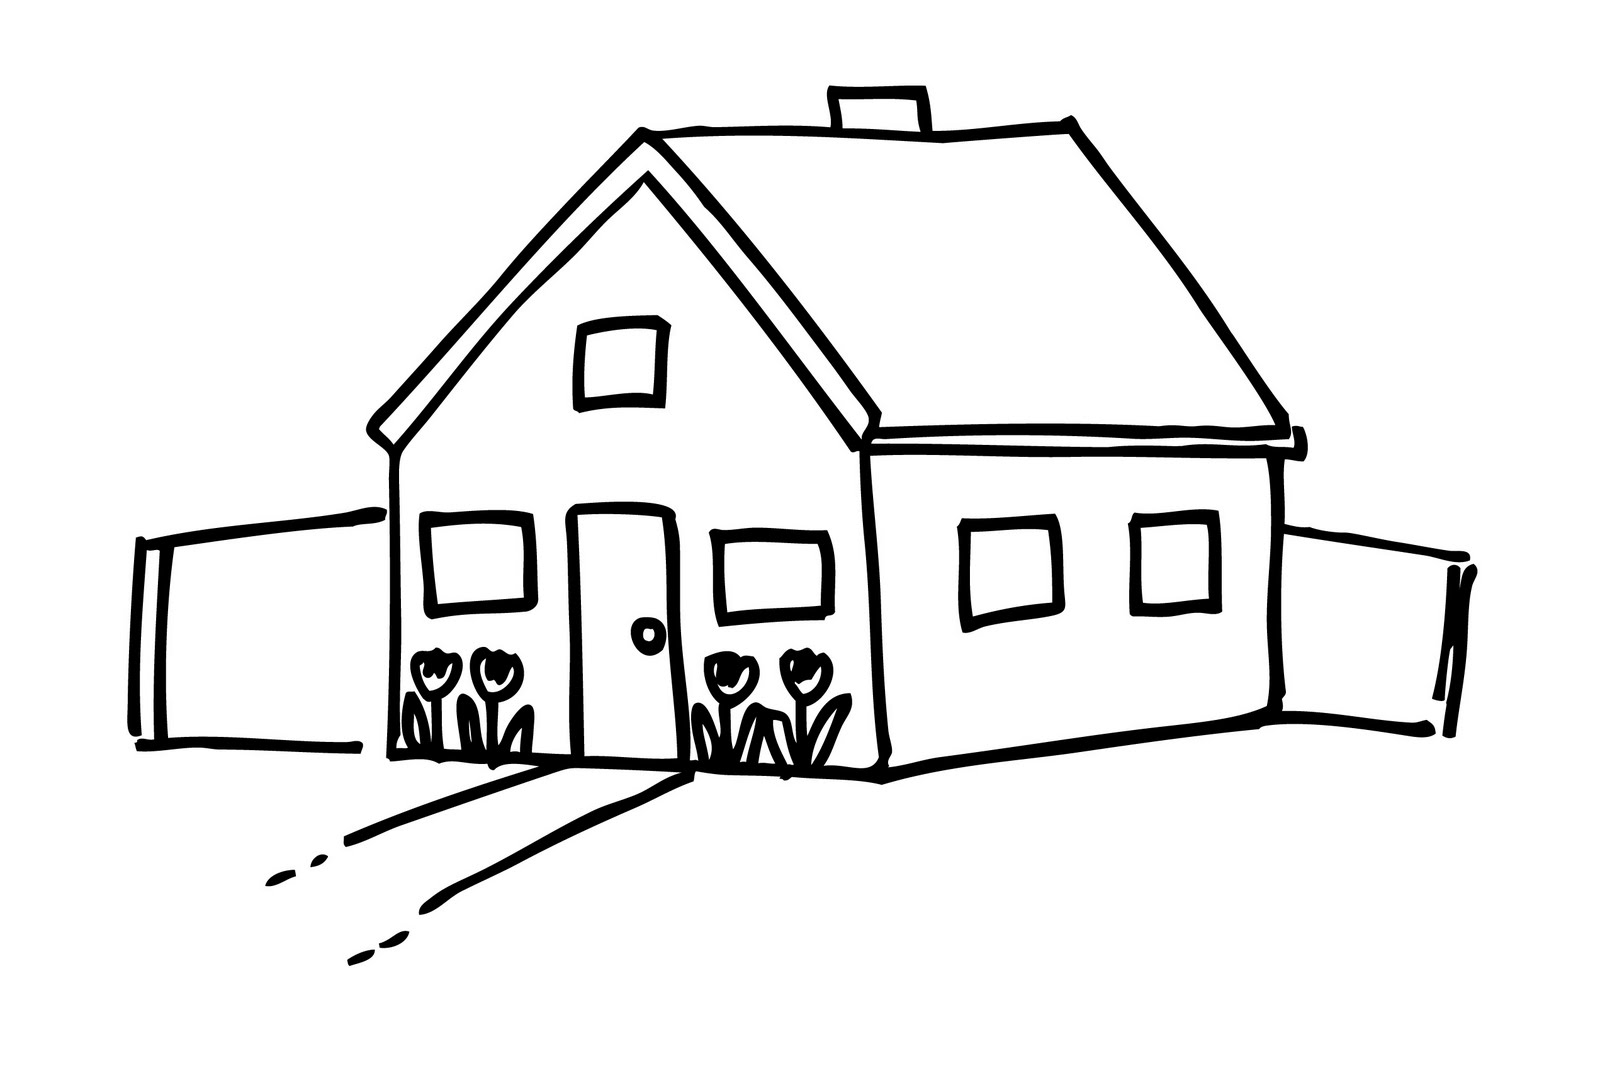 School House Clip Art Black And White - ClipArt Best